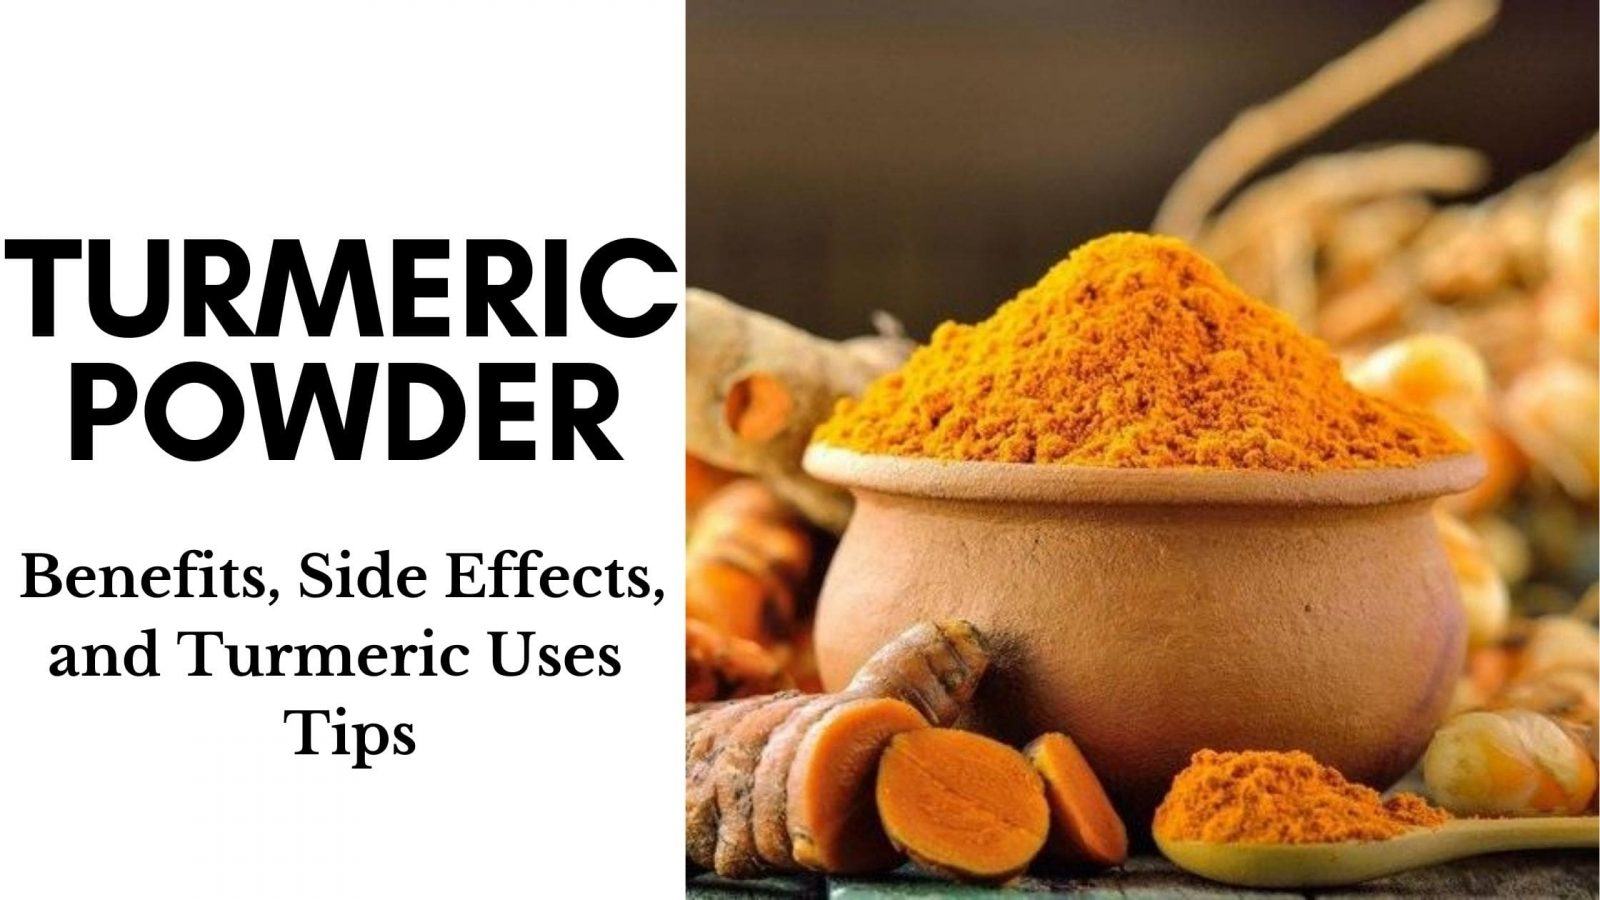 Turmeric Powder Benefits, Side Effects, and Tips